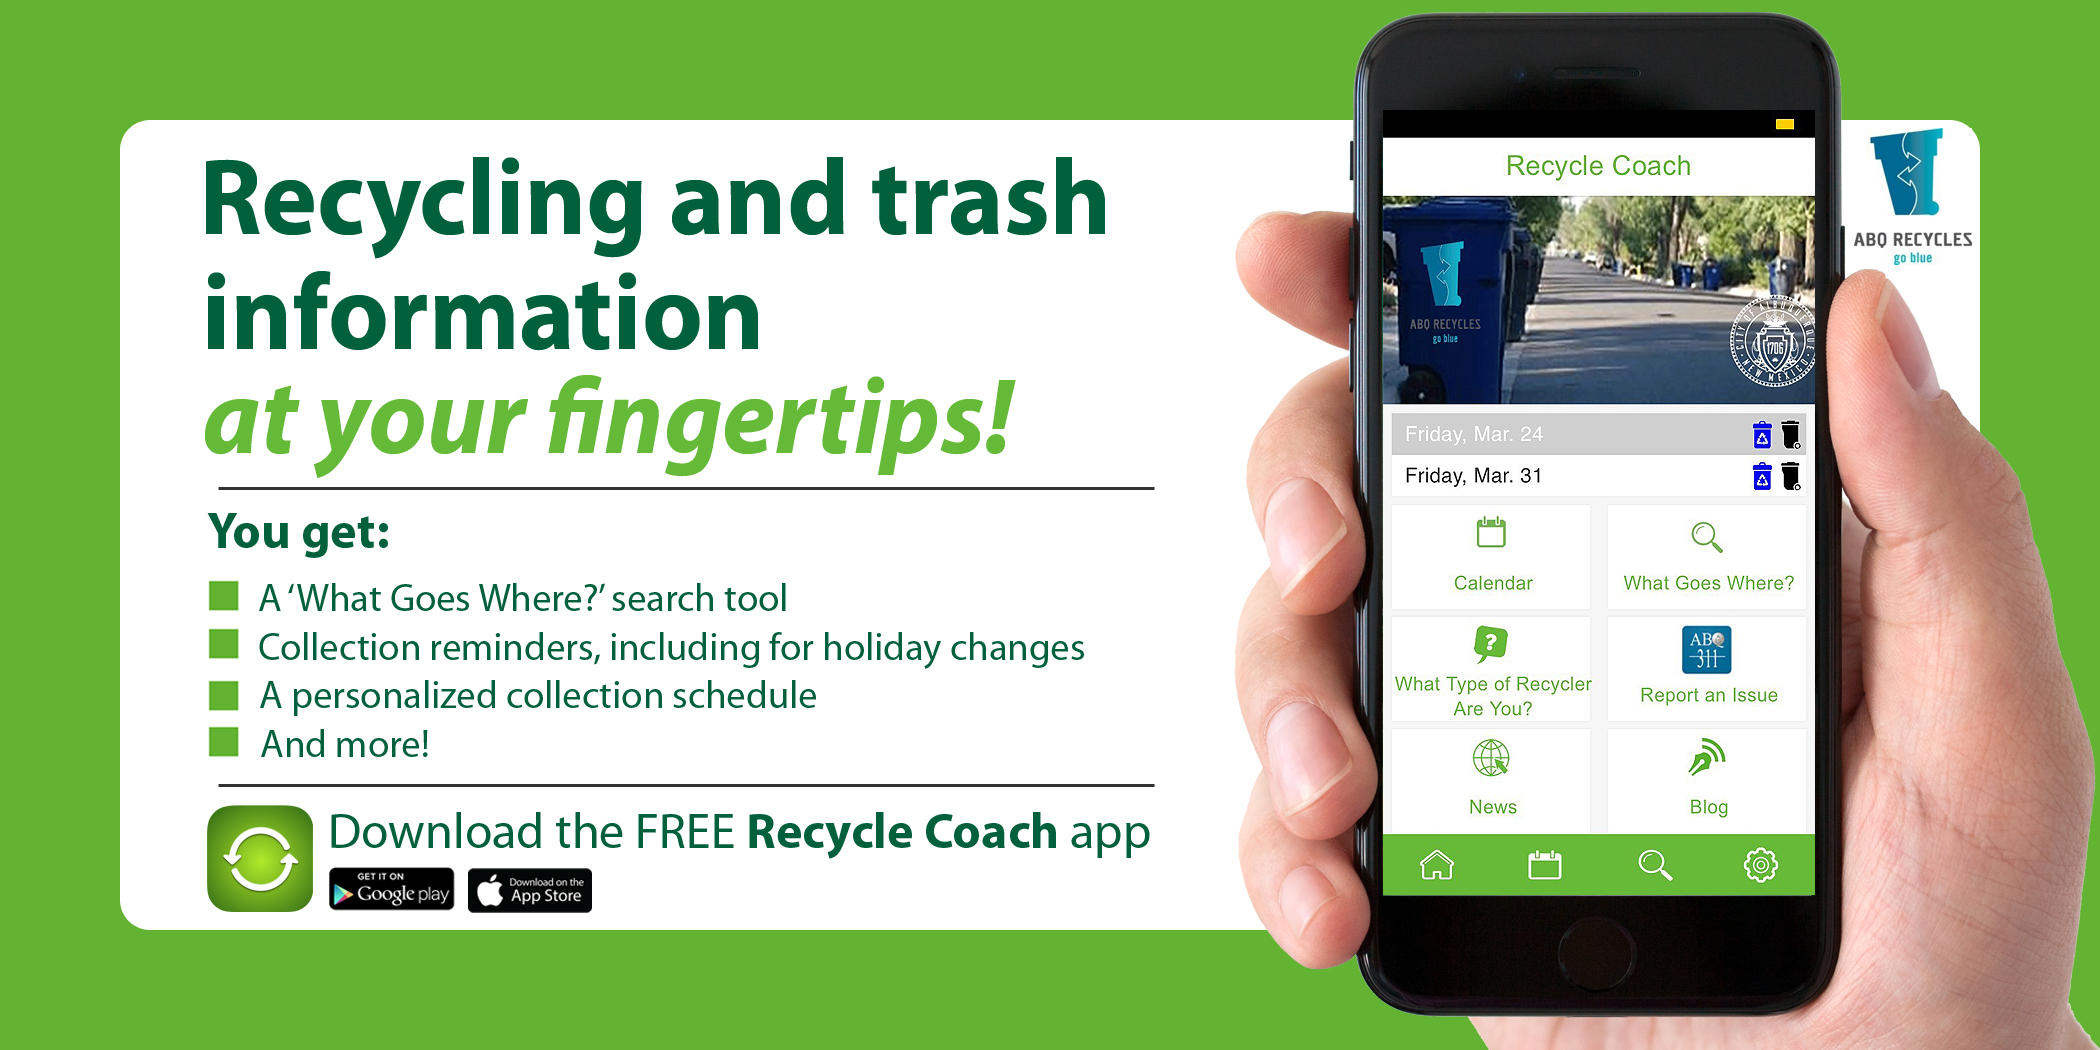 Recycling and trash information at your fingertips! You get: A 'What Goes Where' search too; Collection reminders, including for holiday changes; A personalized collection schedule; And more!